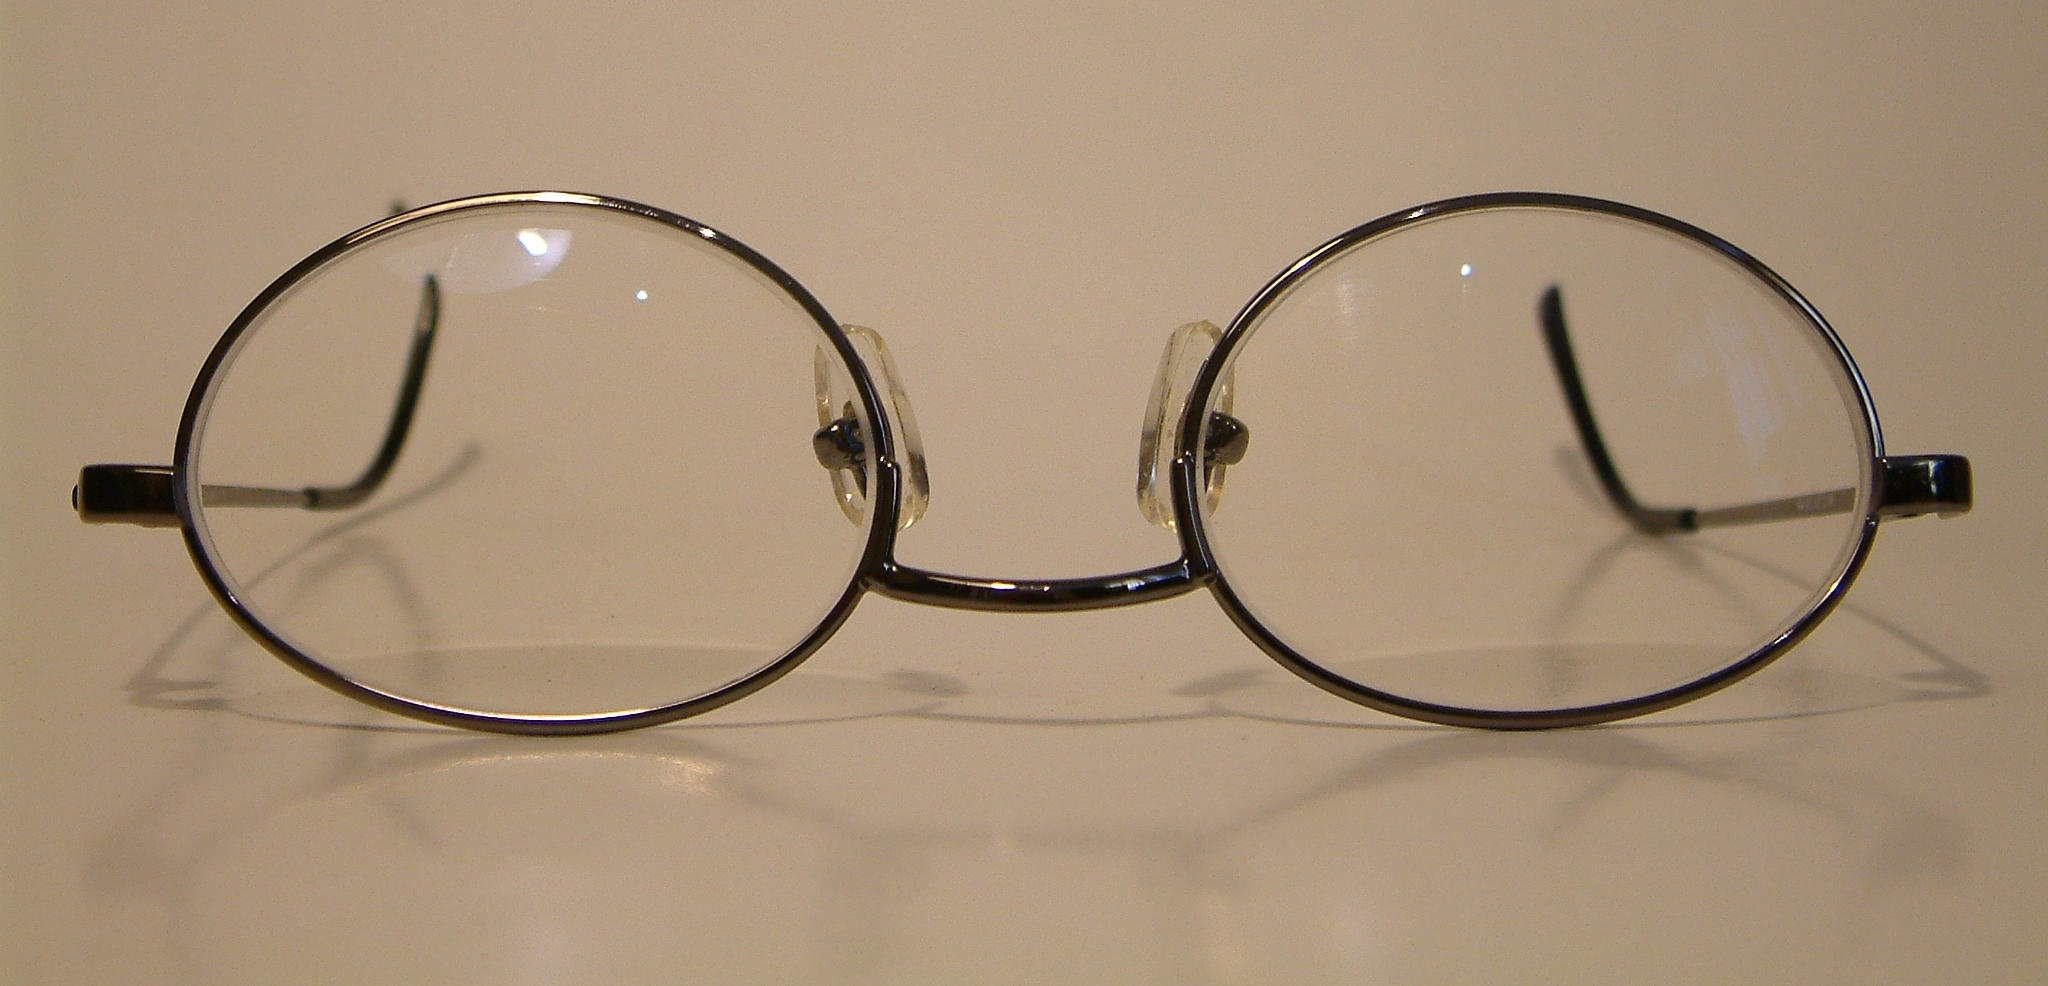 Glases stock-photo 2 by damnlife-stock